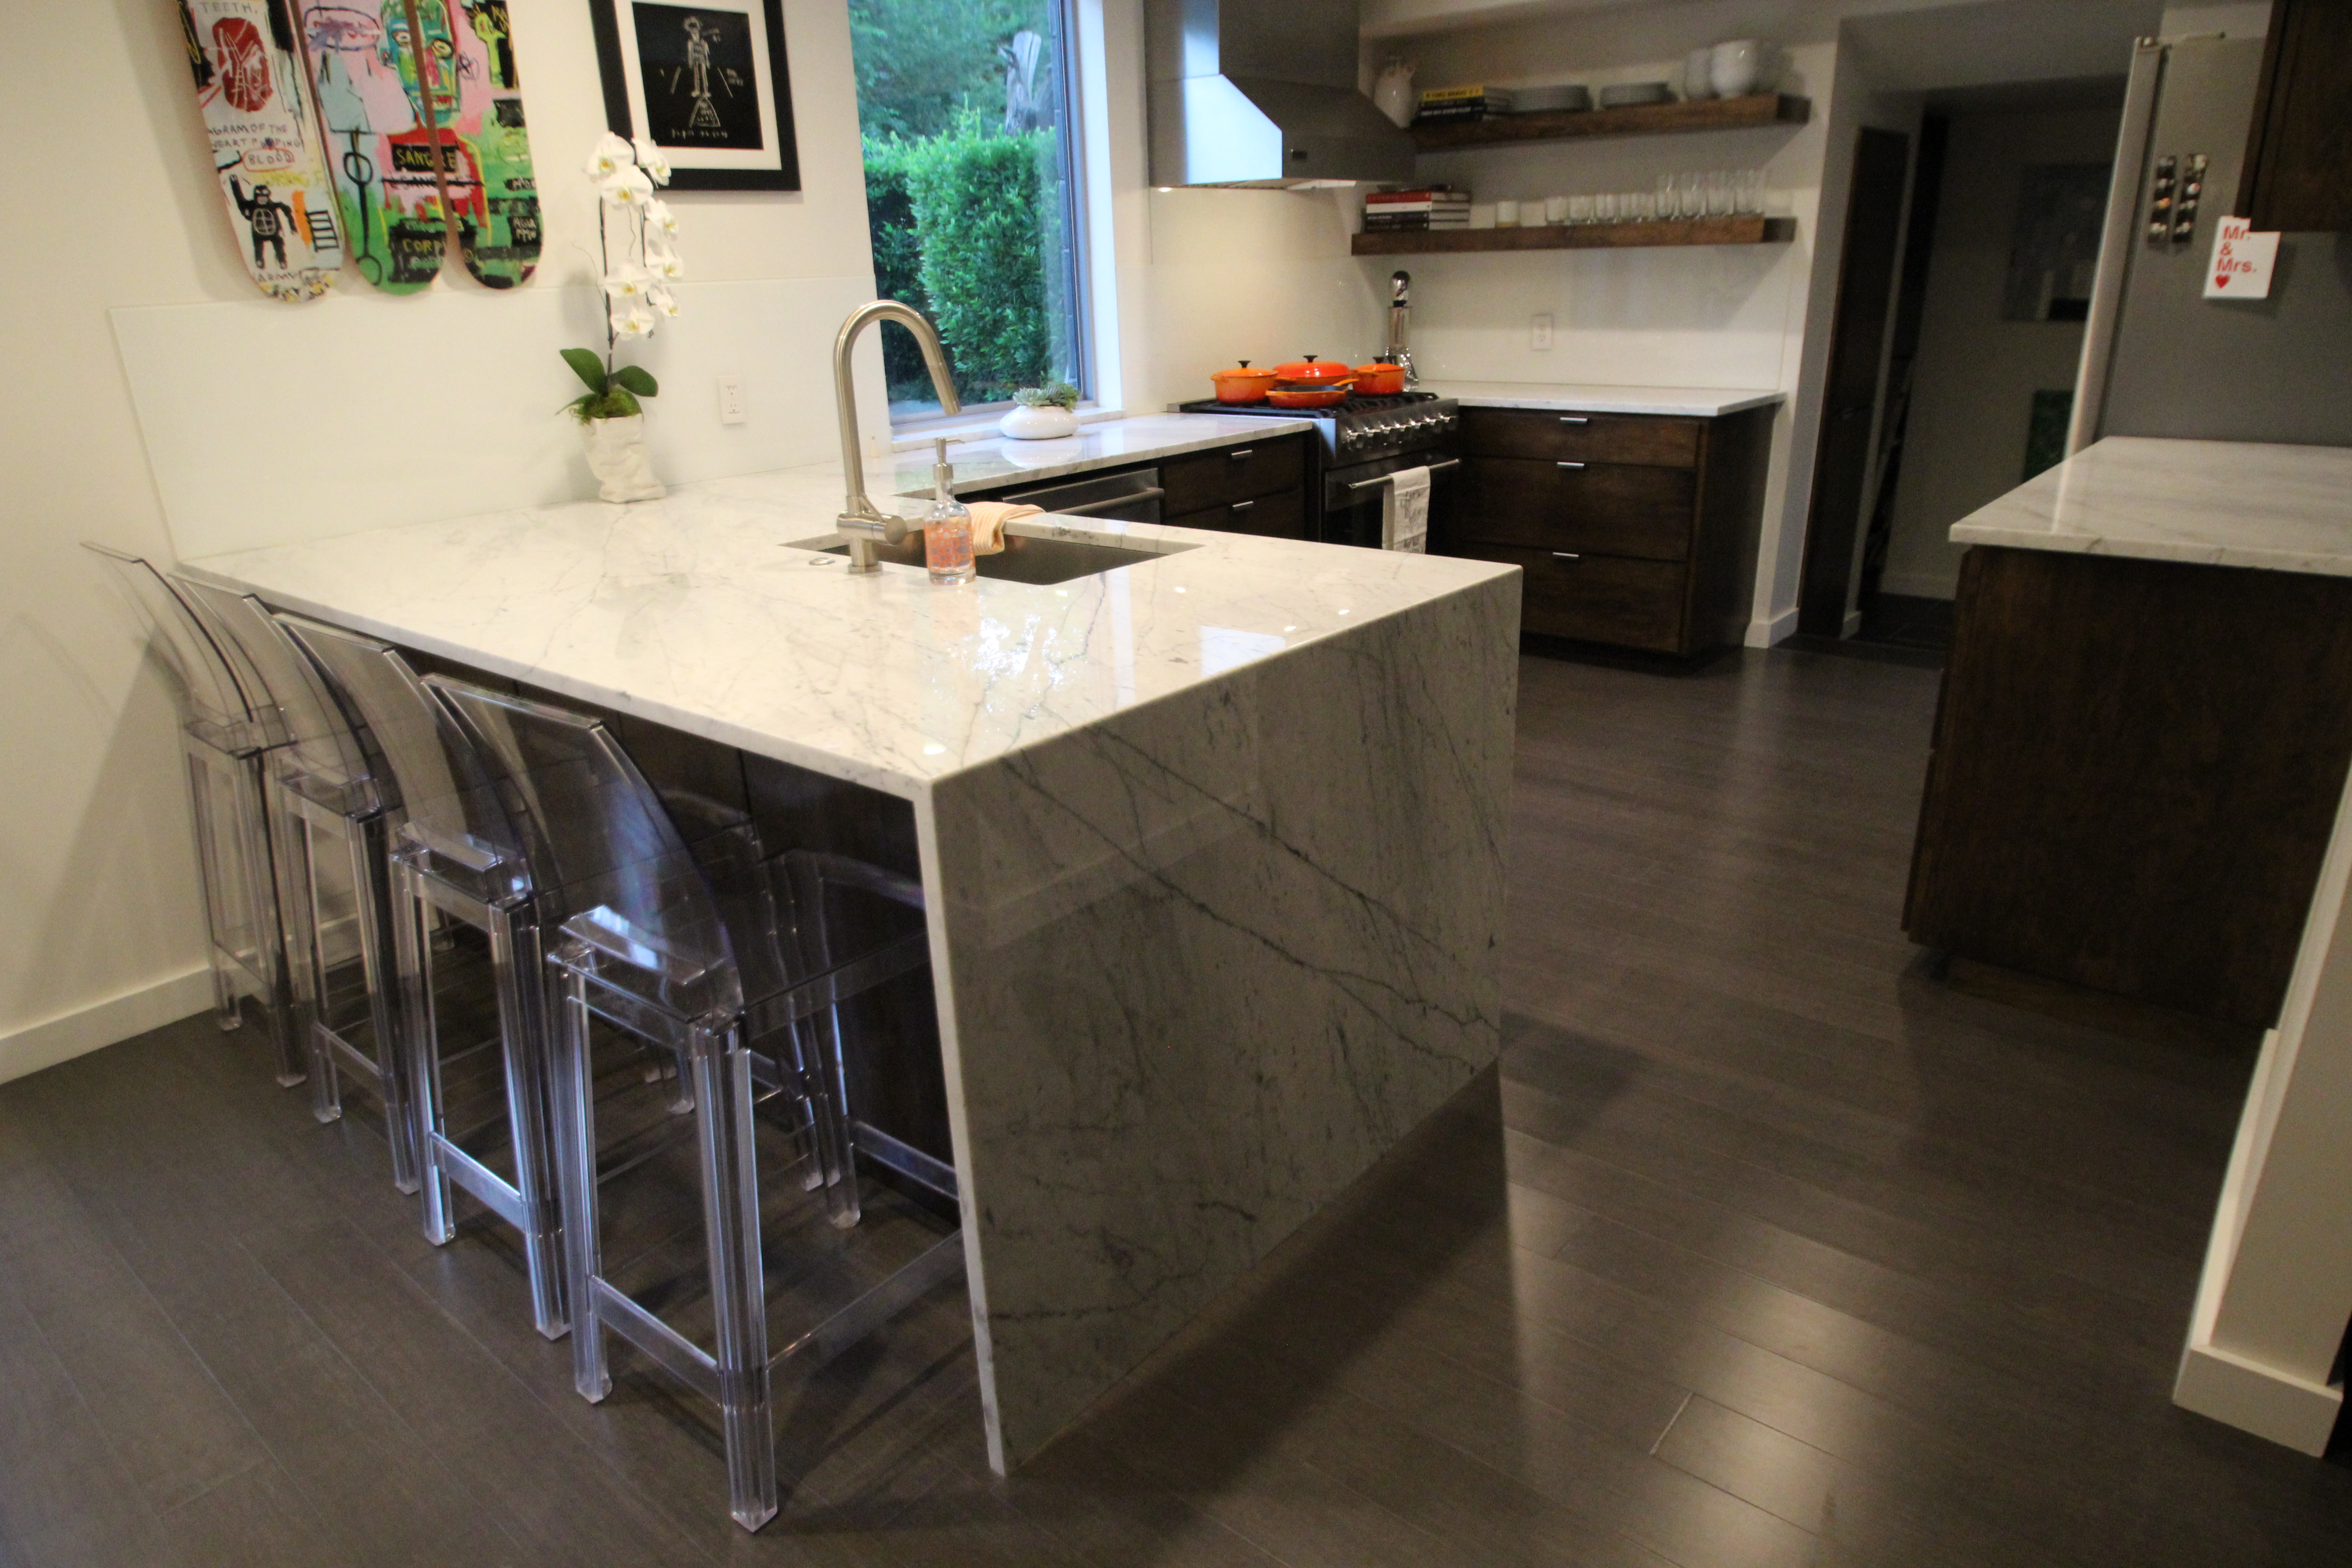 kitchens kitchen remodel okc Trotter Construction Modern kitchen